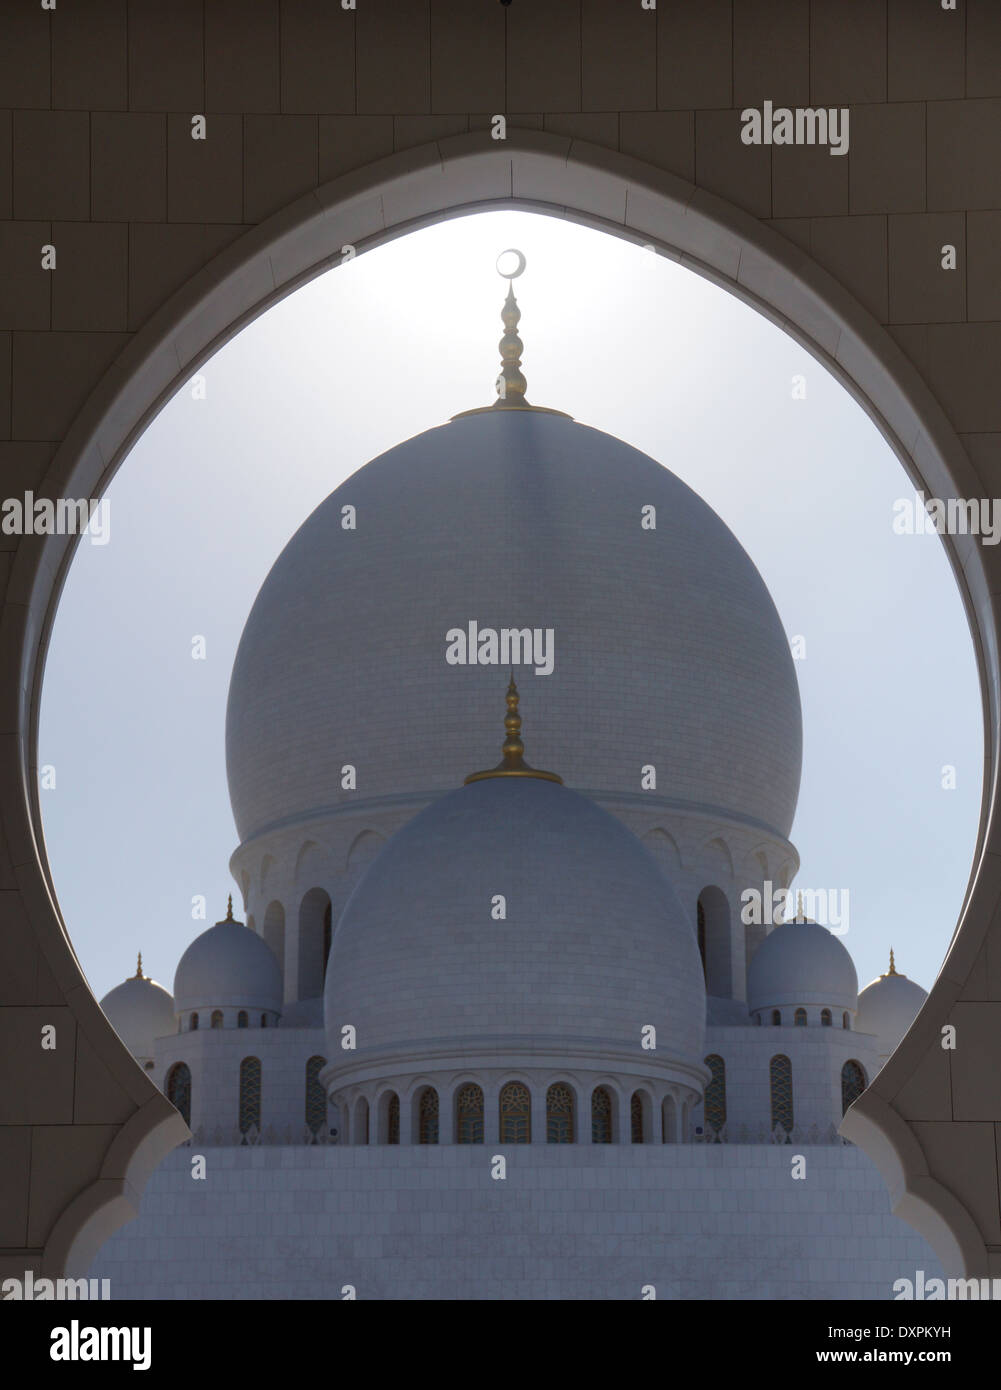 Looking through a dome shaped wall to the main dome with its surrounding domes at sunset at the Sheikh Zayed Grand Mosque - Stock Image